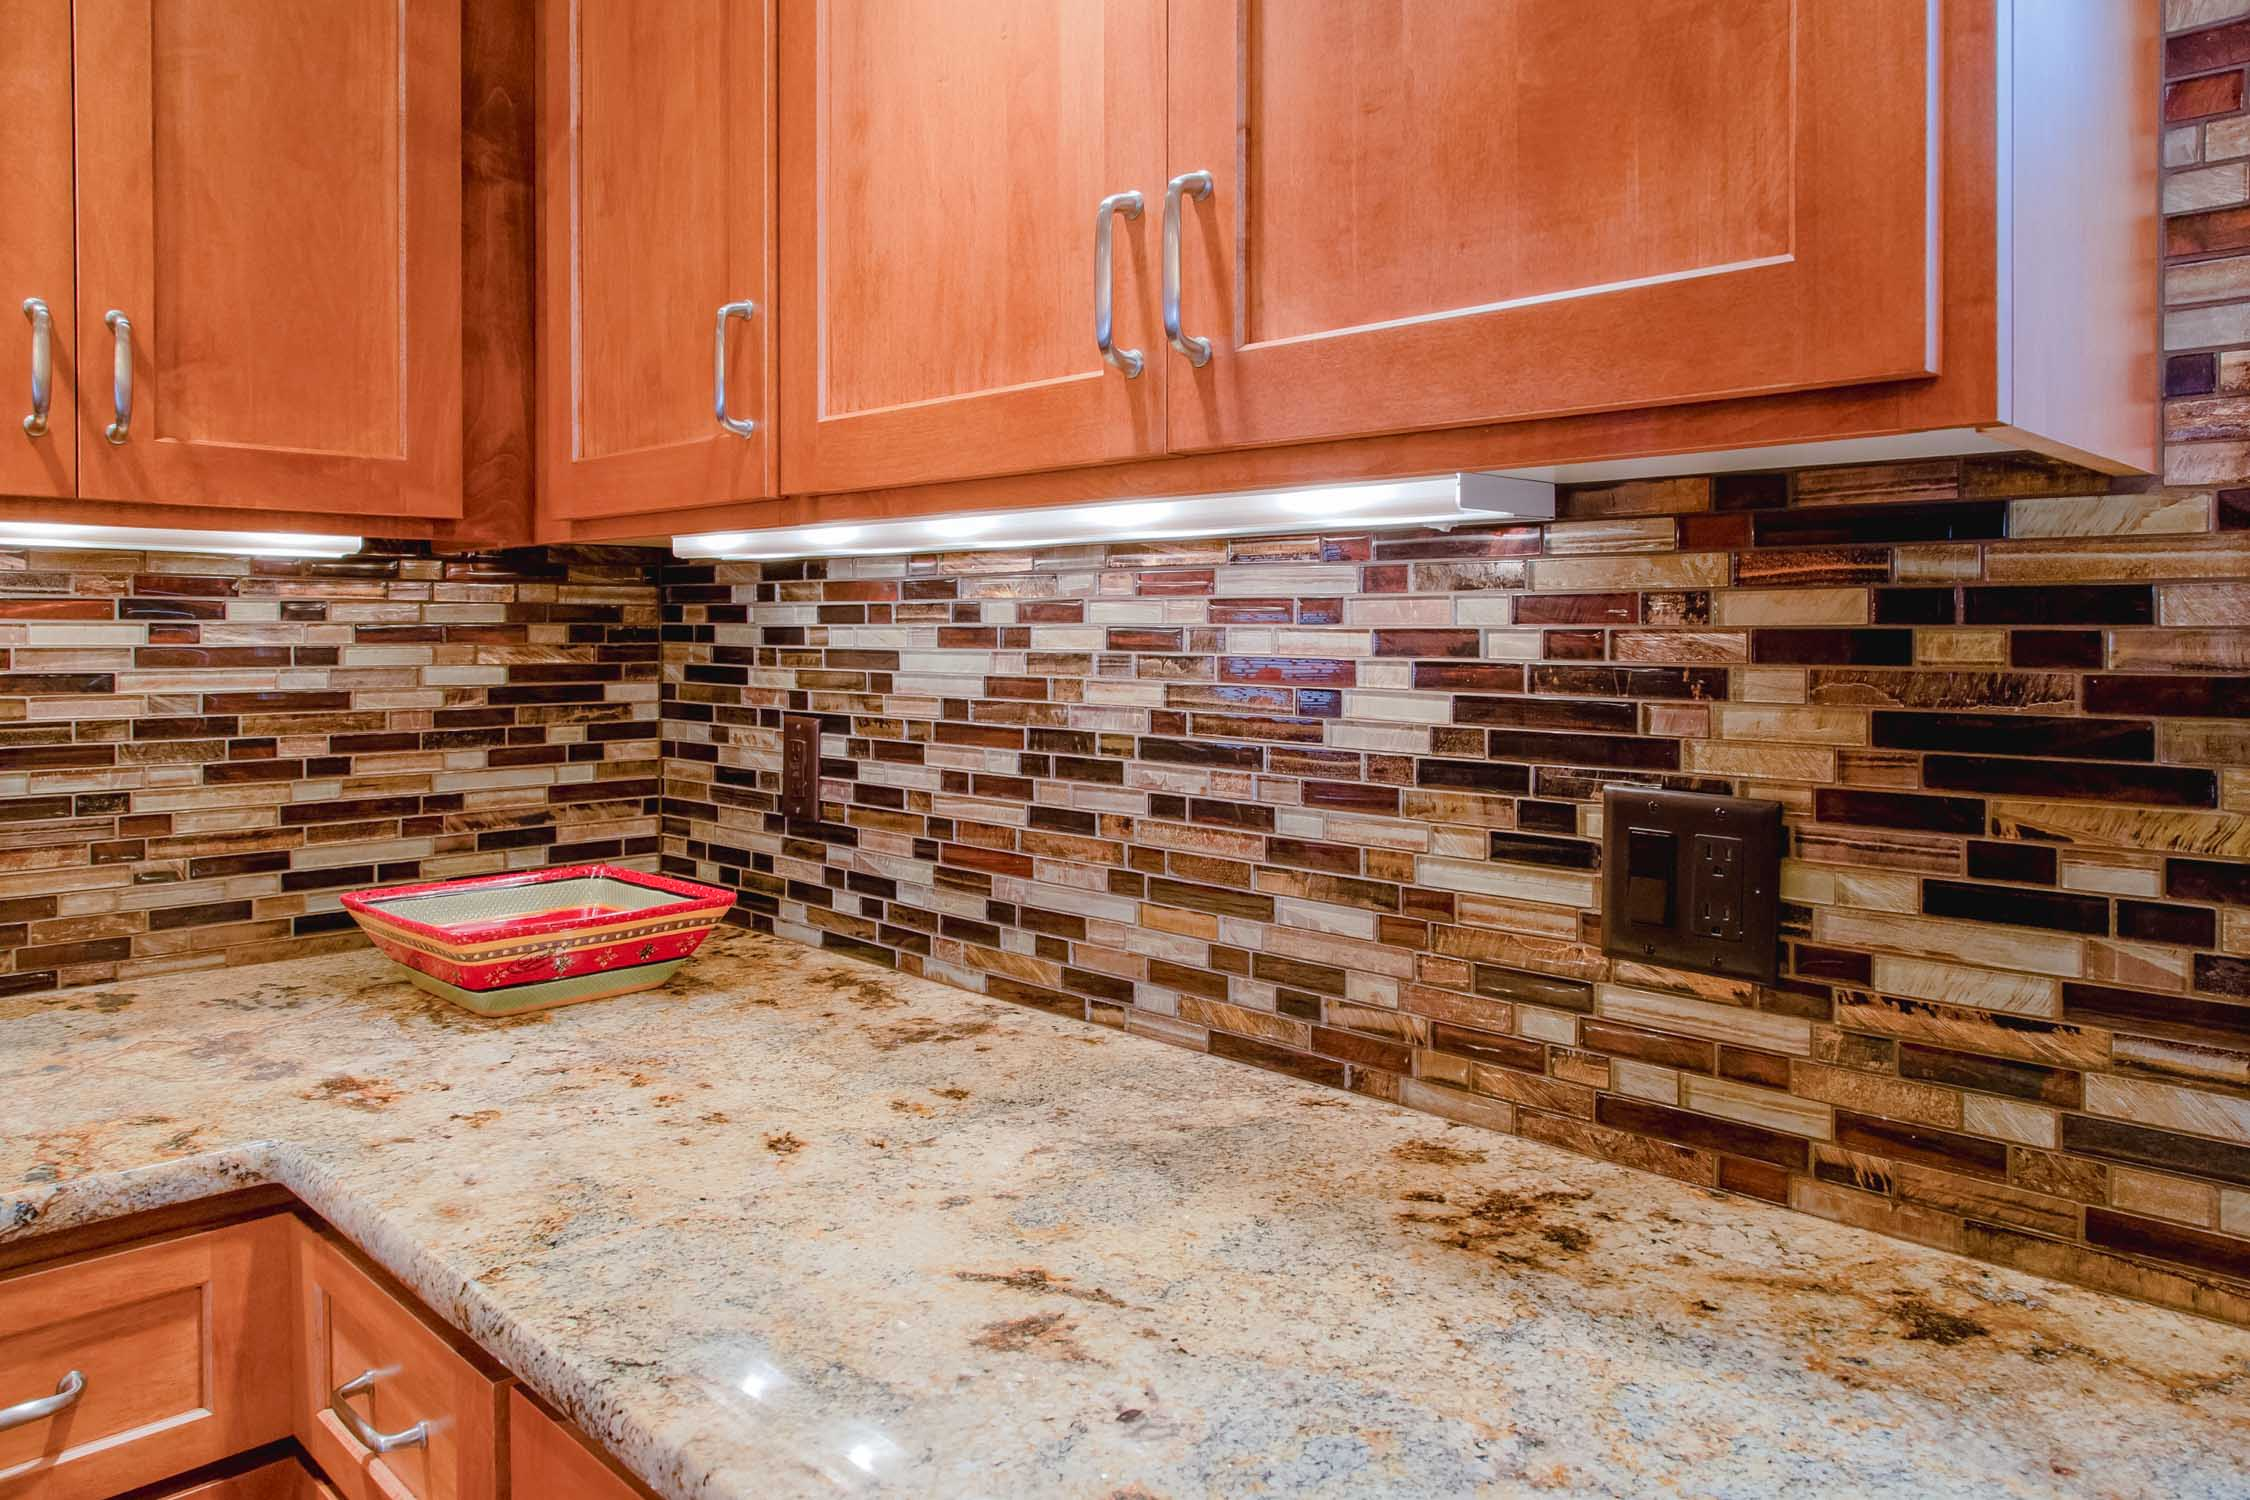 Multicolored Tile Backsplash